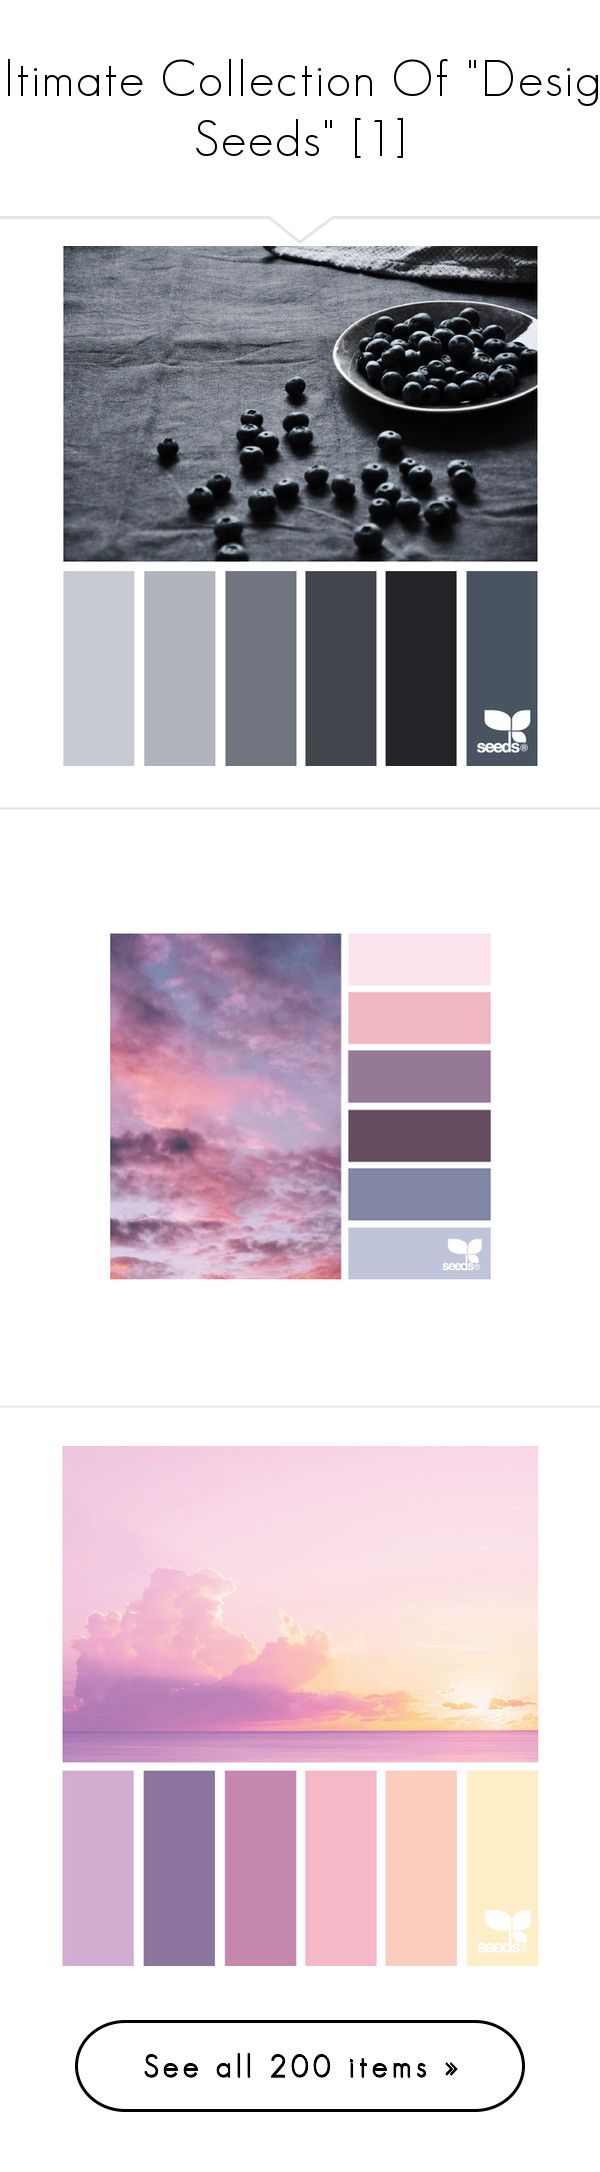 """""""Ultimate Collection Of """"Design Seeds"""" [1]"""" by rose-chan-needs-a-life ❤ liked on Polyvore featuring design seeds, backgrounds, colors, fillers, pictures, effect, saying, quotes, picture frame and phrase"""